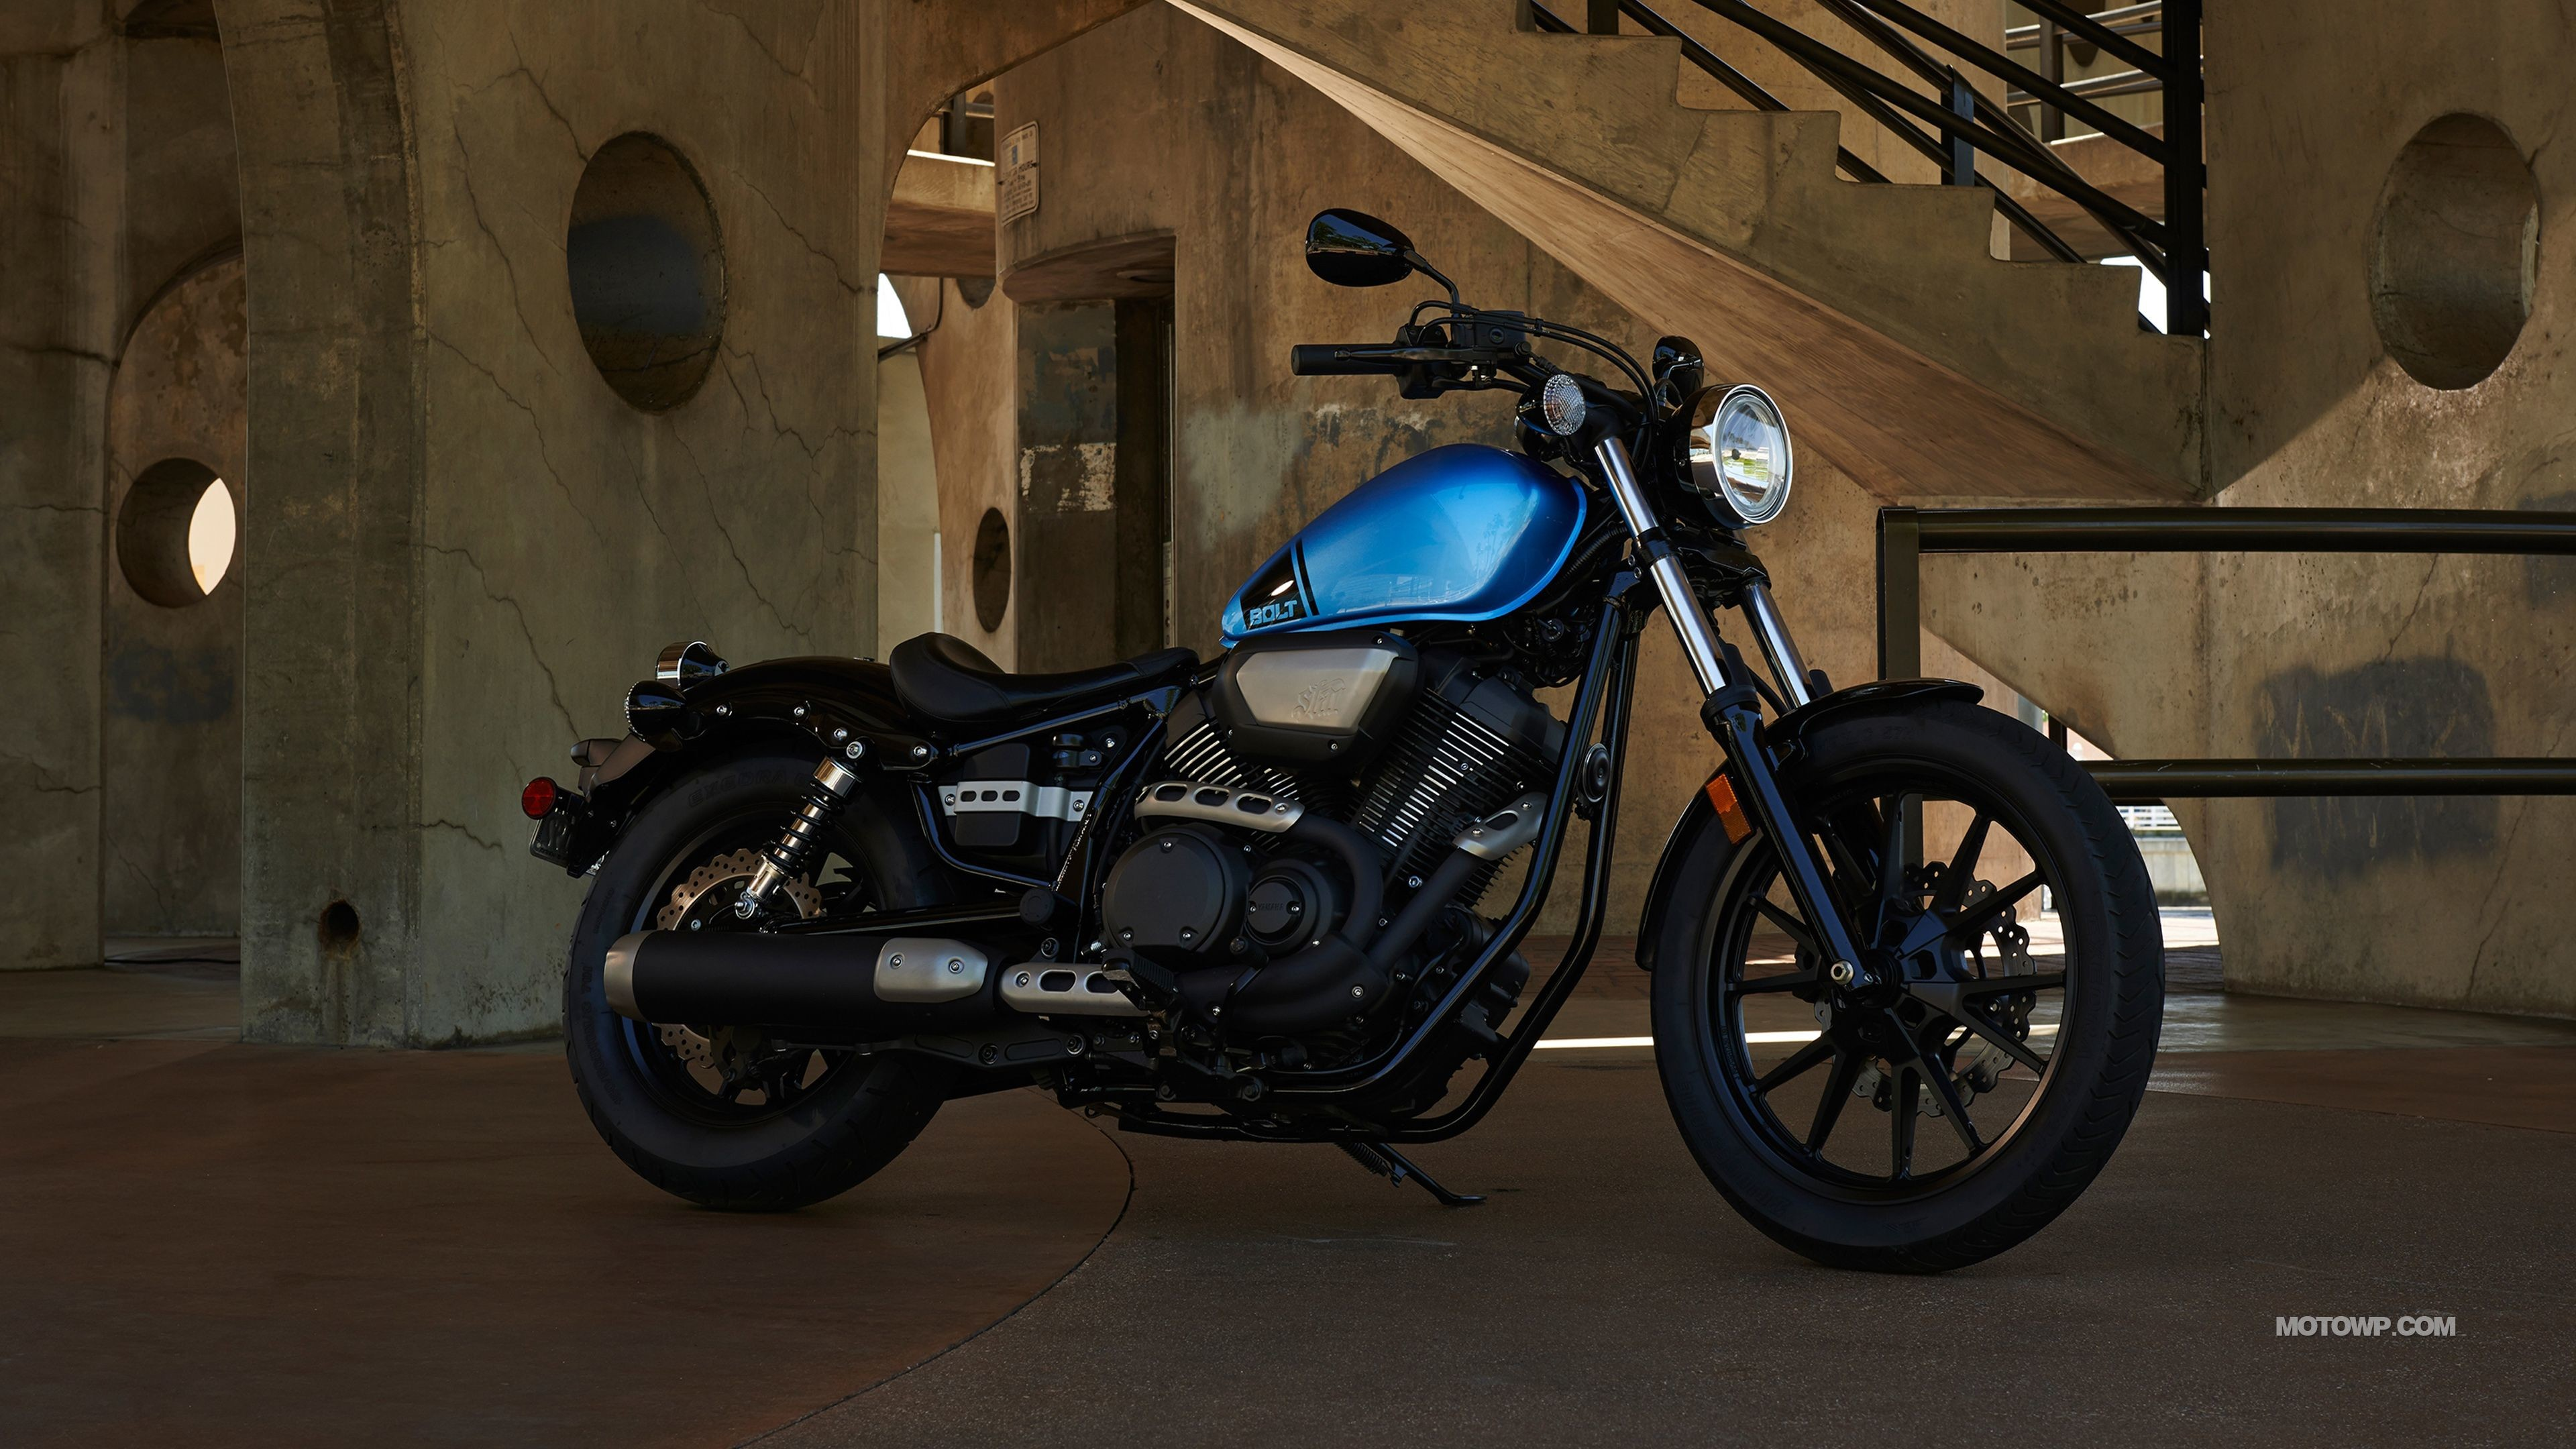 Res: 3840x2160, 17 Best images about Bobber motorcycles on Pinterest | Bobber .